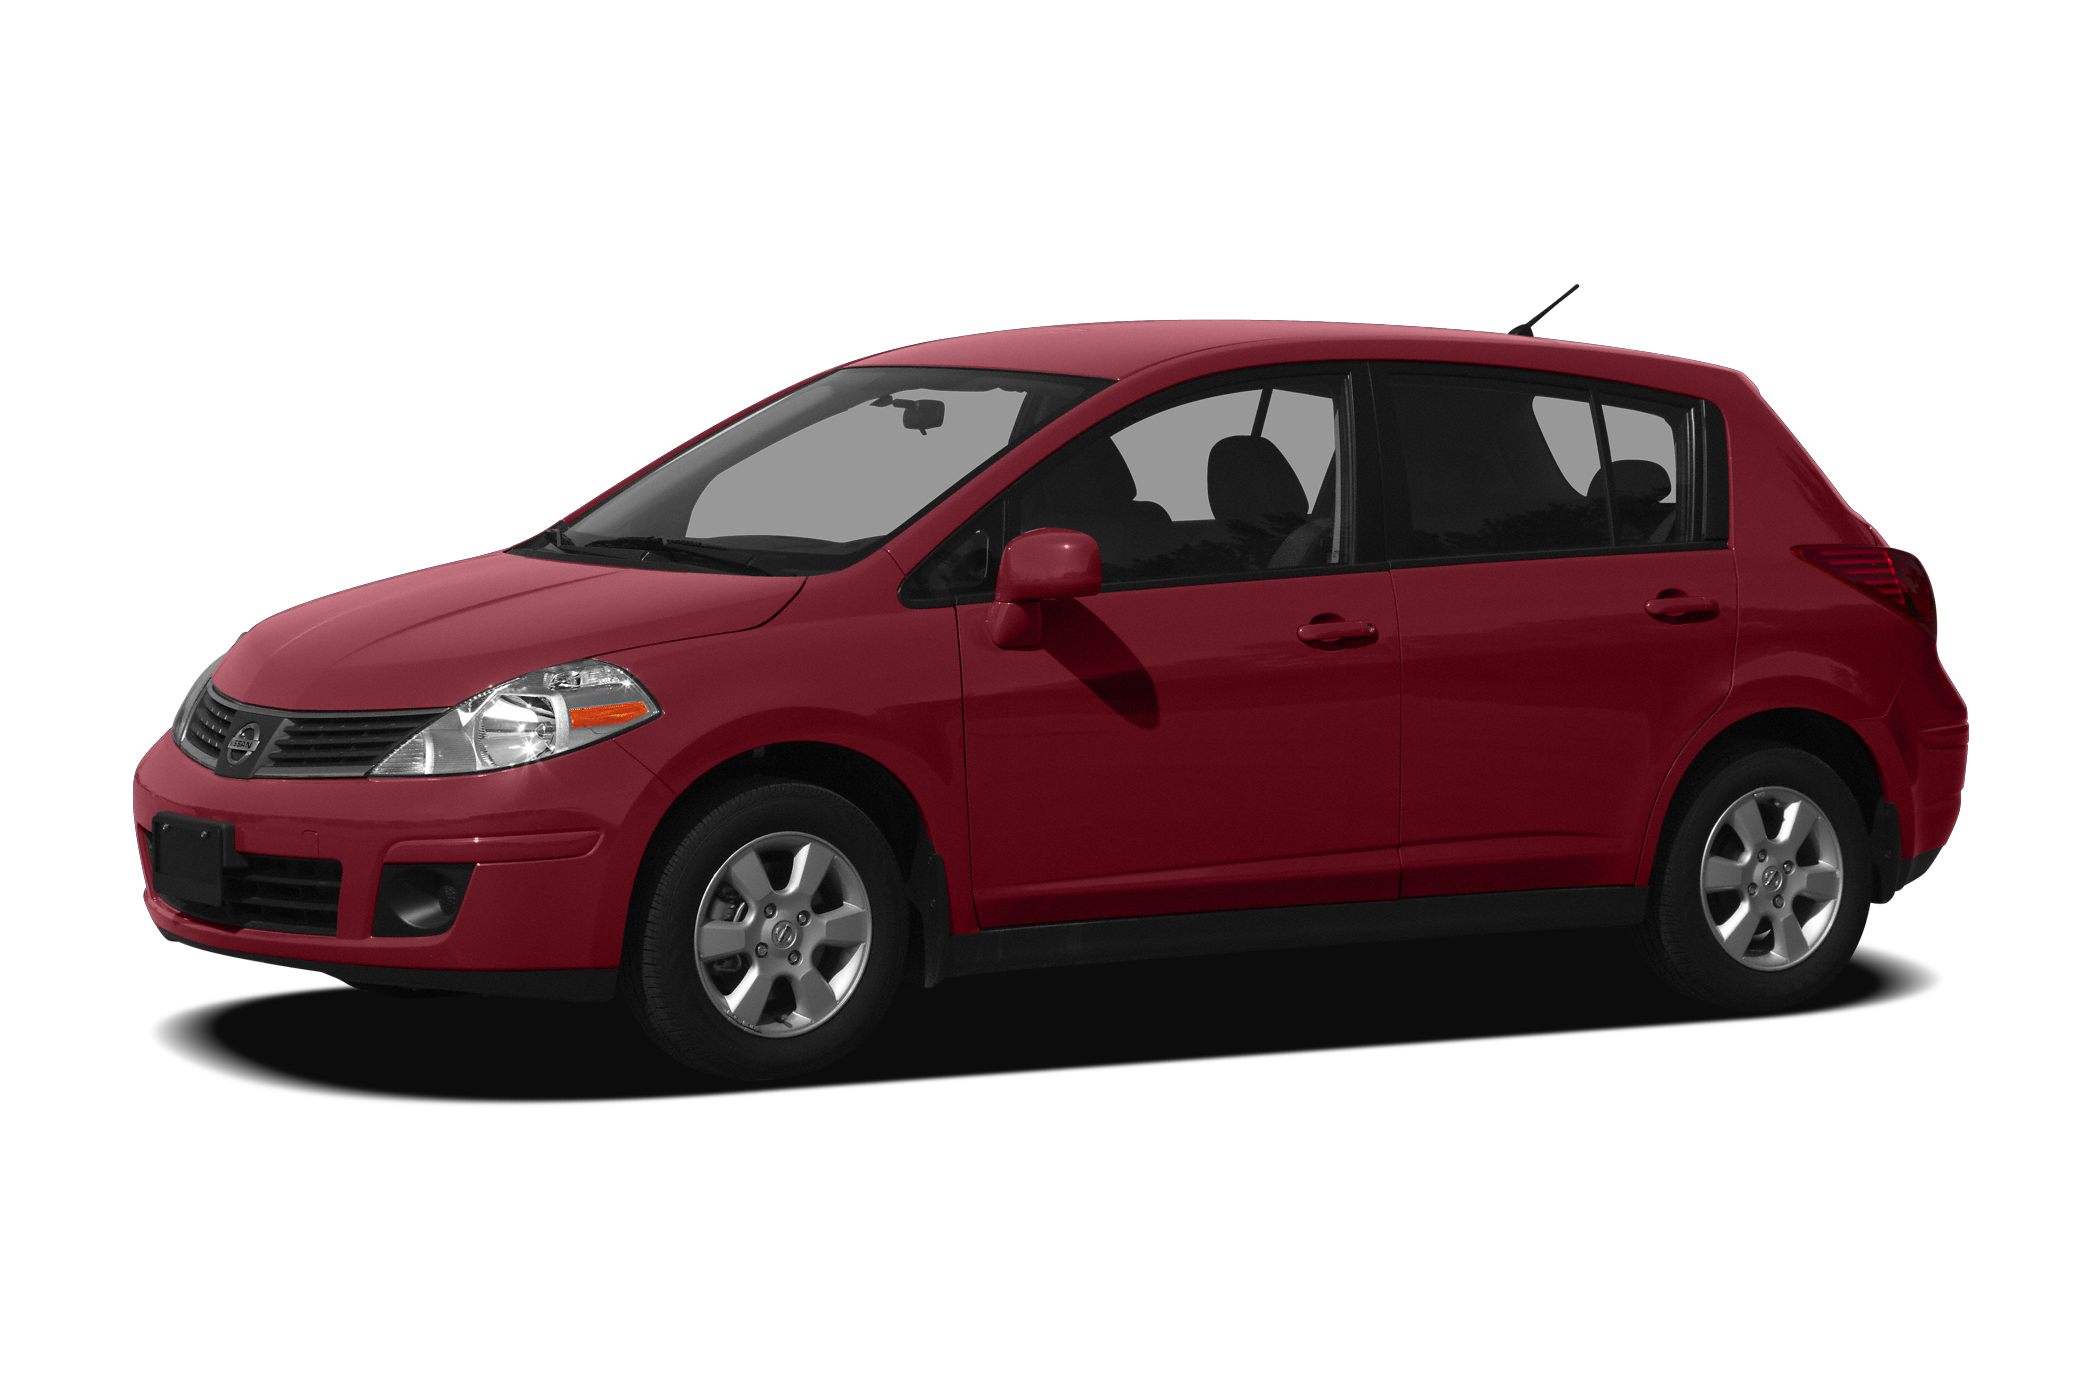 2009 Nissan Versa 1 8s 4dr Hatchback Specs And Prices